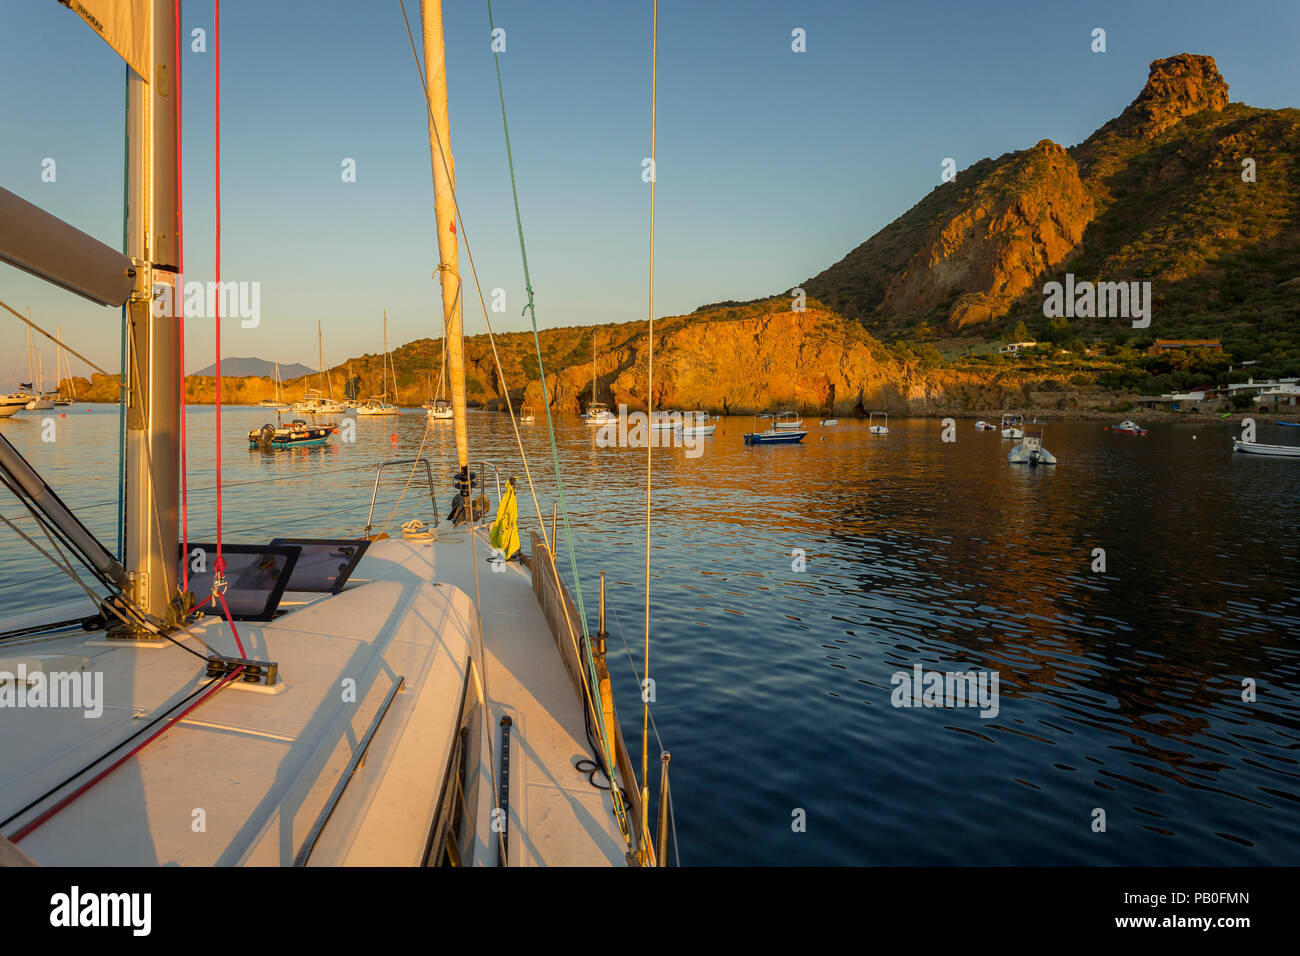 Sailboat anchored in Panarea, Aeolian islands, Sicily. - Stock Image